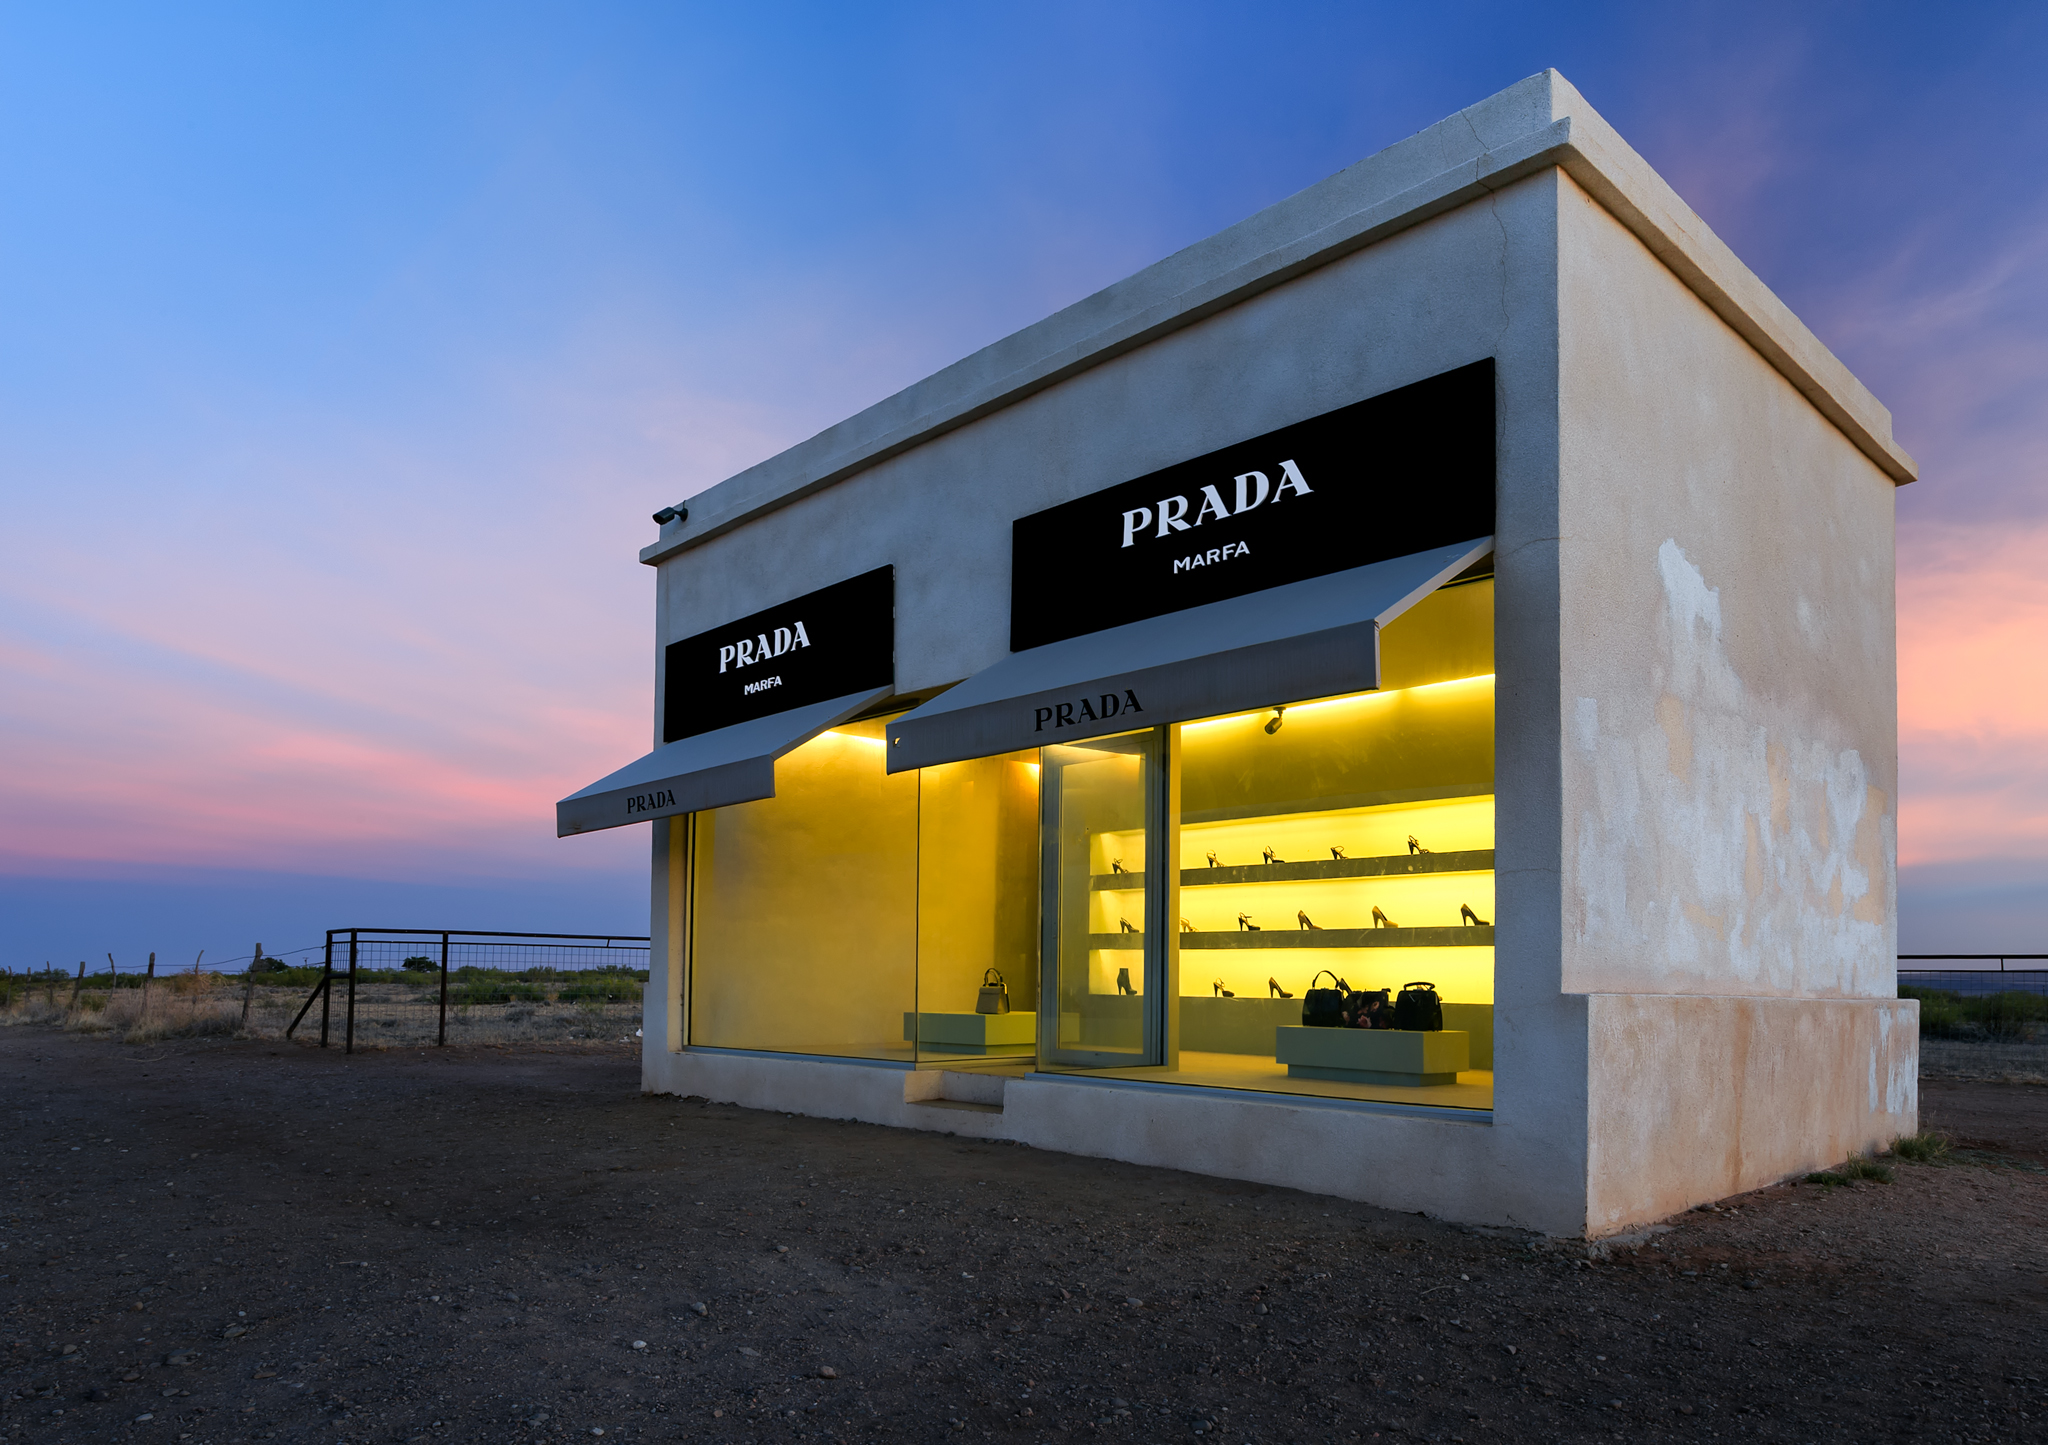 Strange Prada Storefront In The Middle Of Nowhere Can